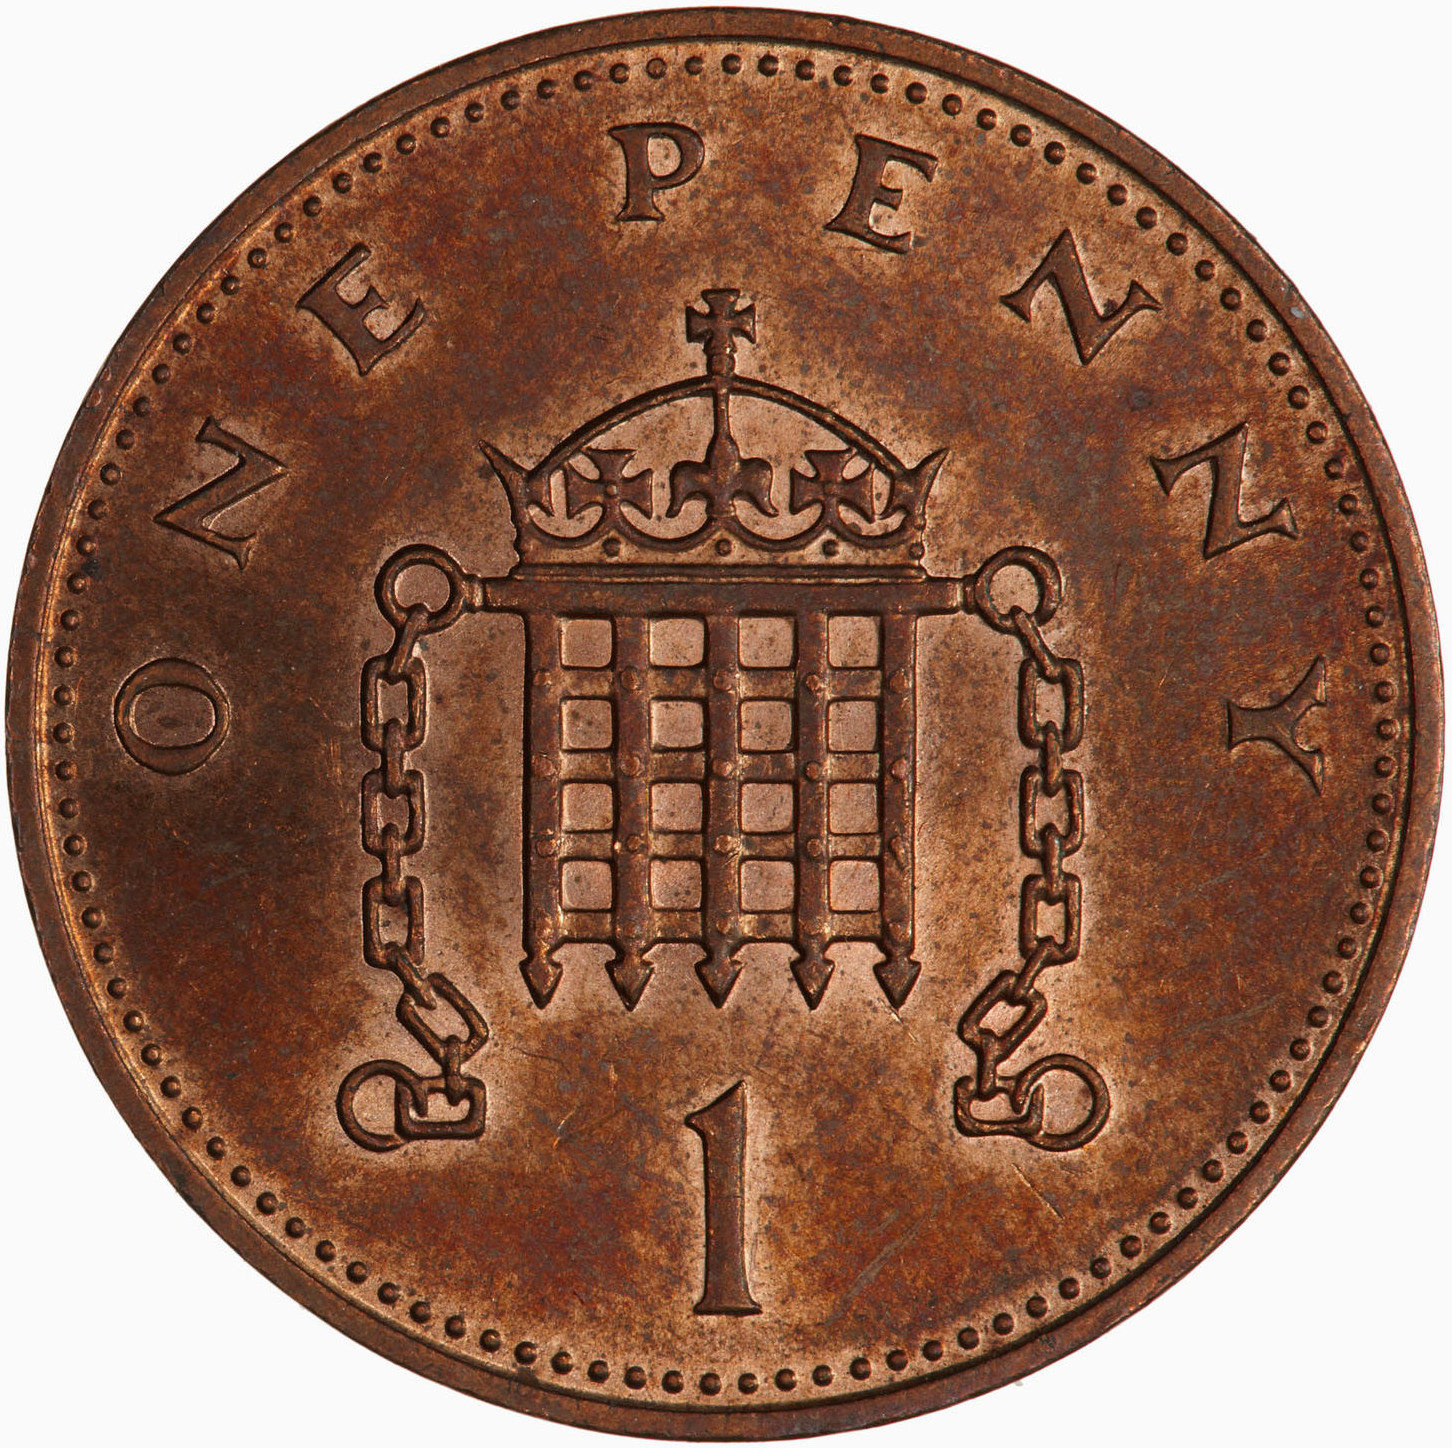 One Penny 1983: Photo Coin - 1 Penny, Elizabeth II, Great Britain, 1983